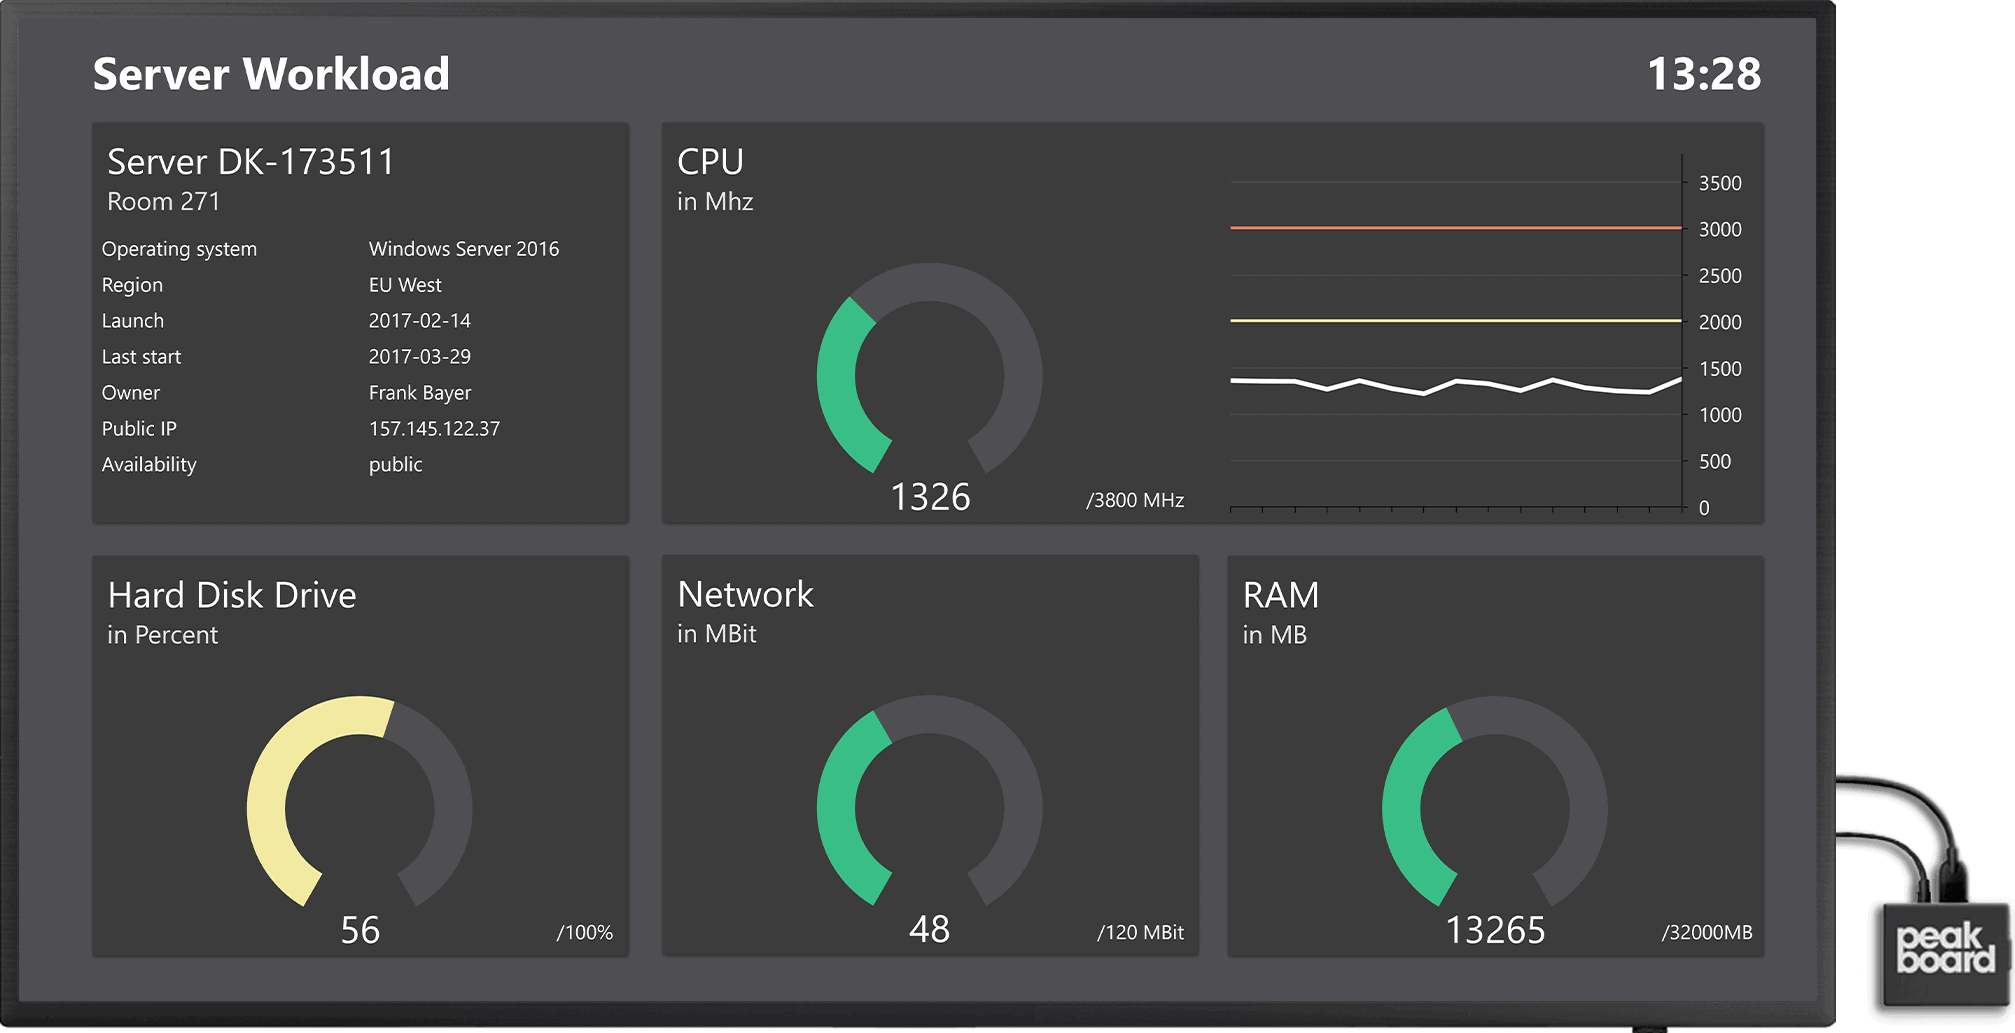 This IT dashboard displays key metrics such as CPU, disk usage, network status and RAM to monitor server performance and utilization in real-time.